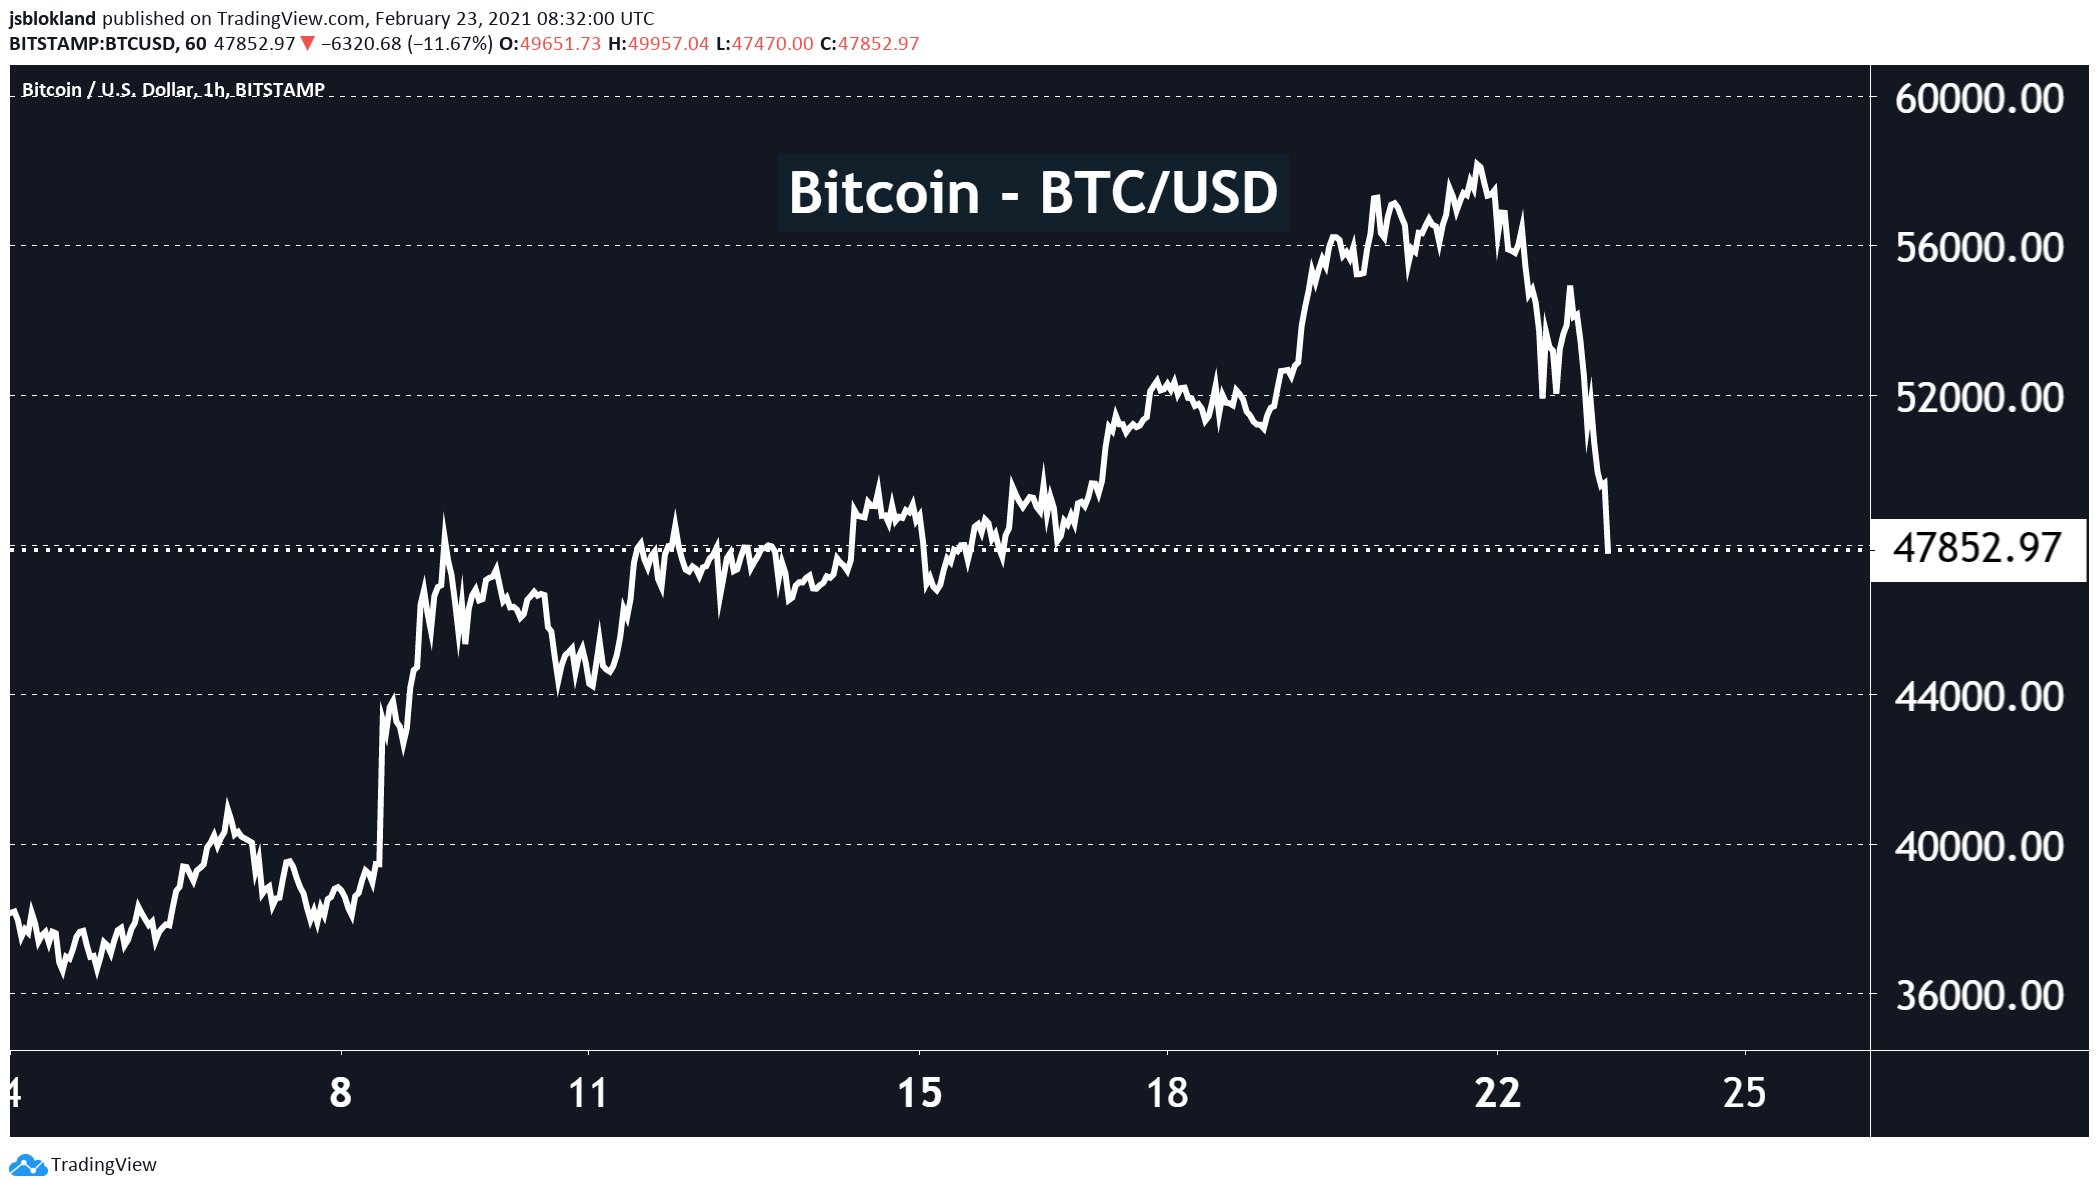 Bitcoin is down almost 20% from its peak a couple days ago